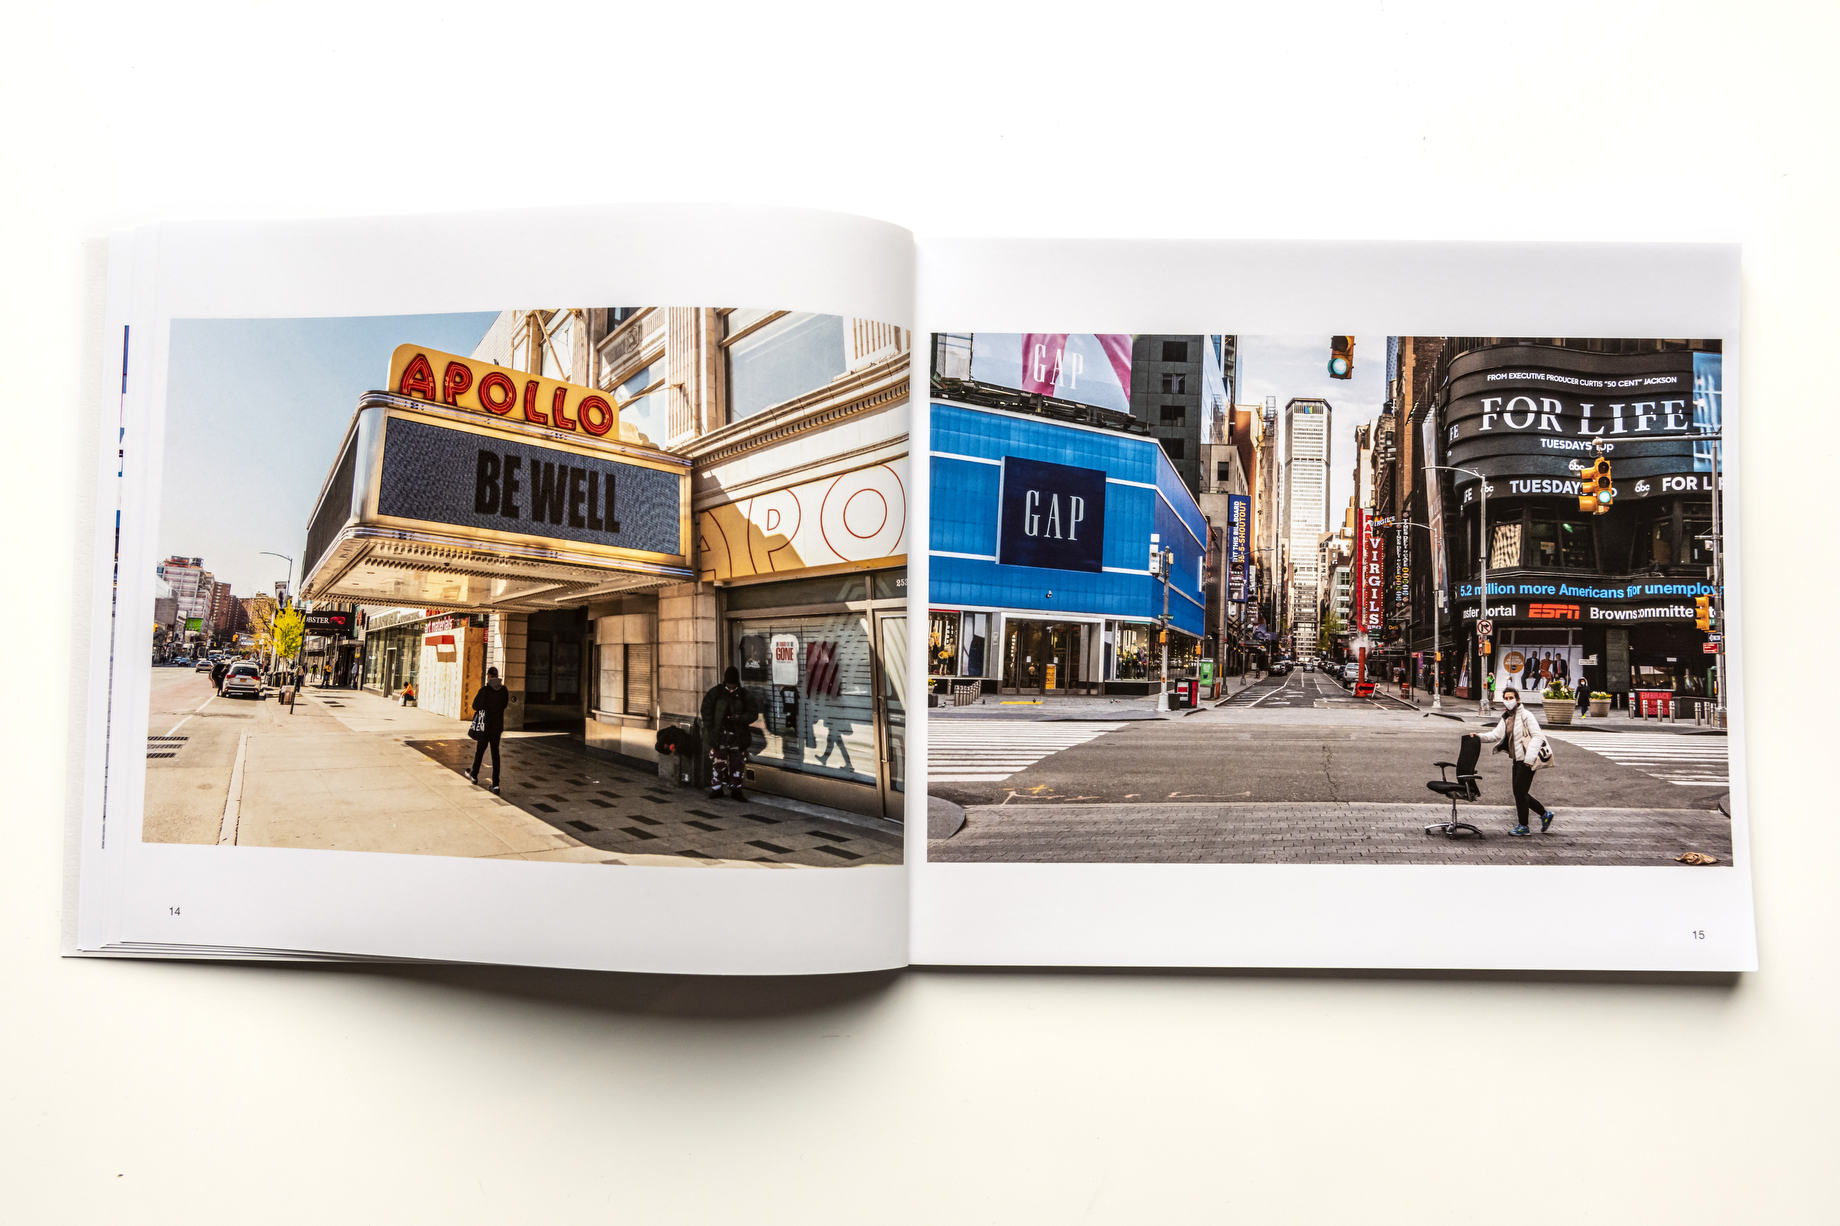 Keep_Going_New_York_book_2o10.JPG